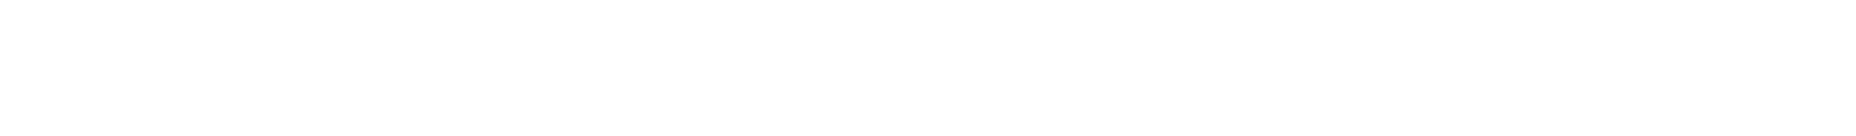 Icons showing various channel platforms